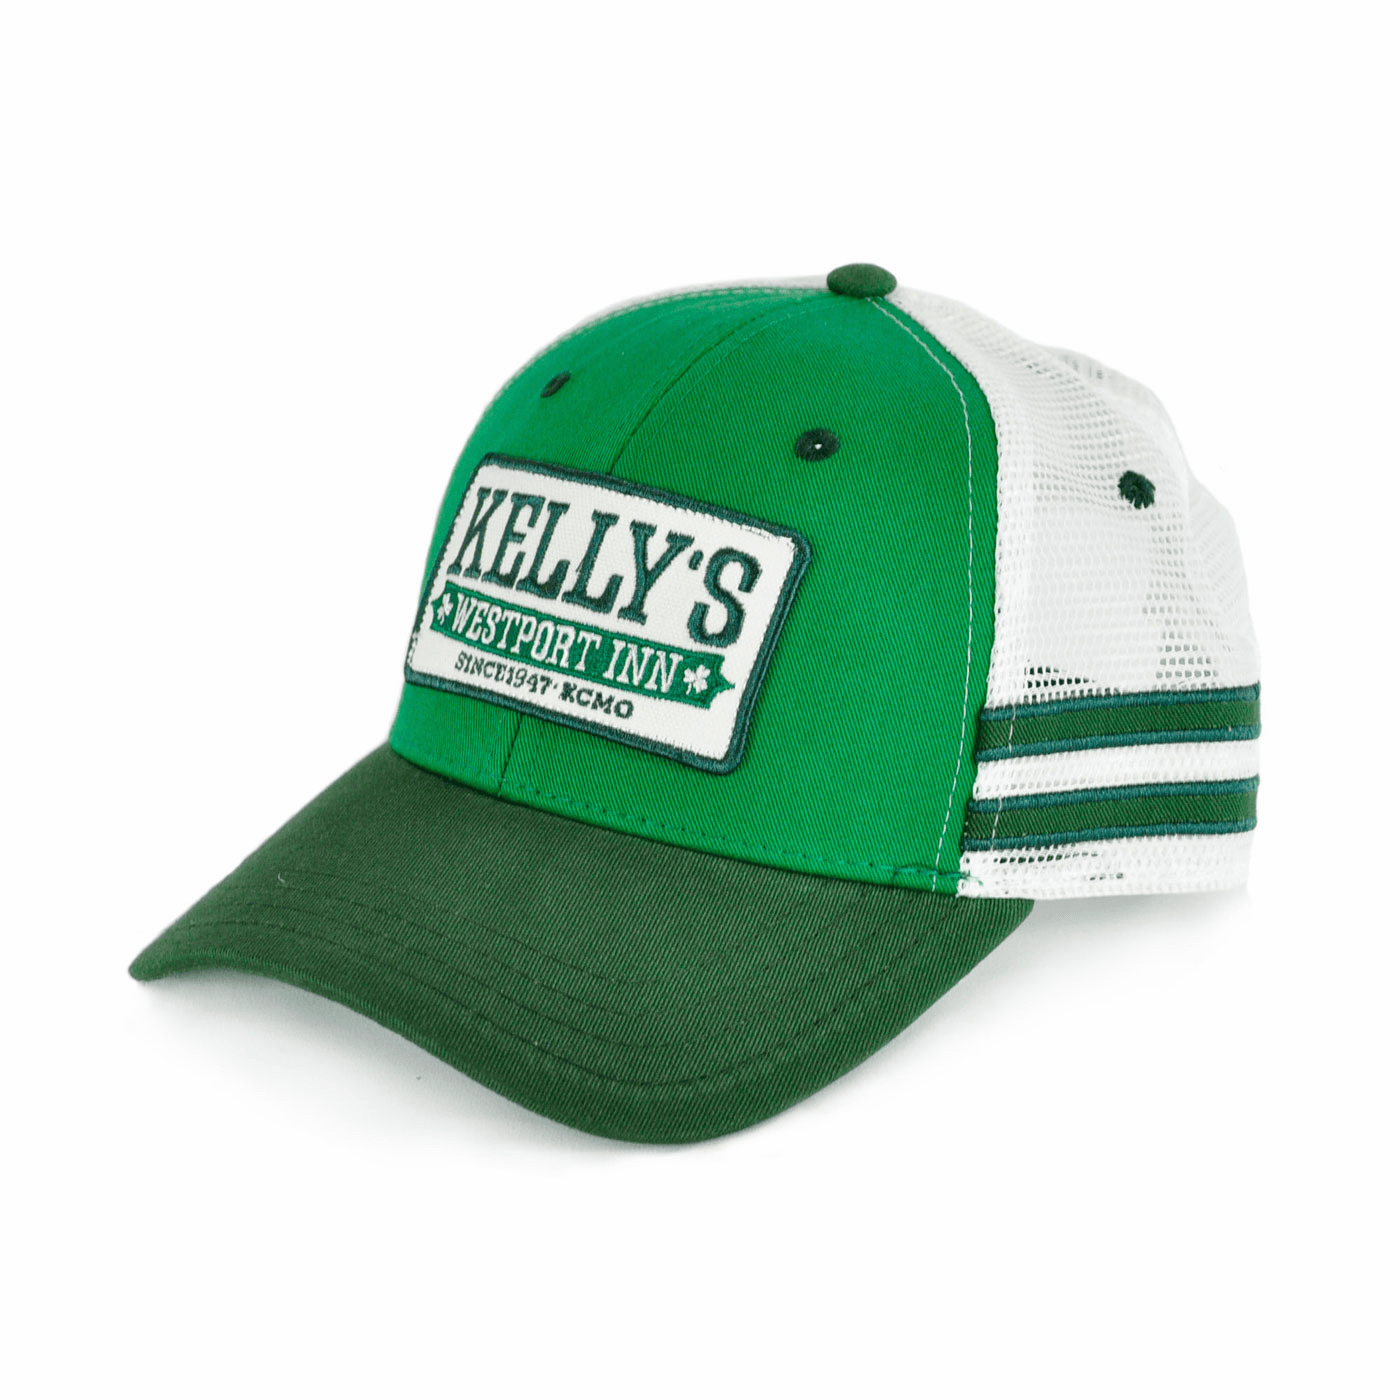 Bunker x Kelly's Collab Trucker Hat